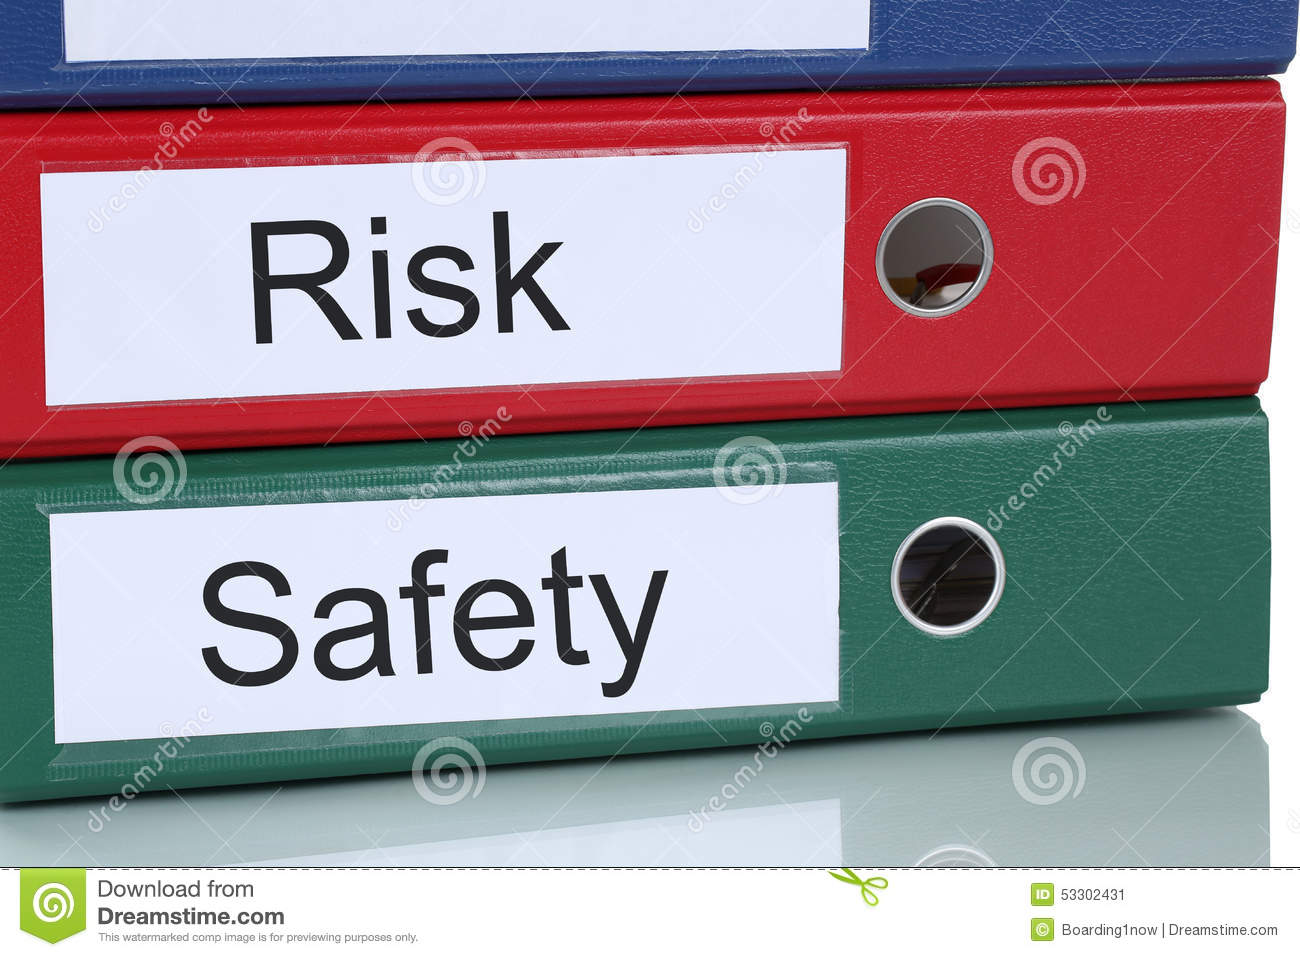 Attend the 2018 Risk Summit--our event in Philadelphia this October 1-